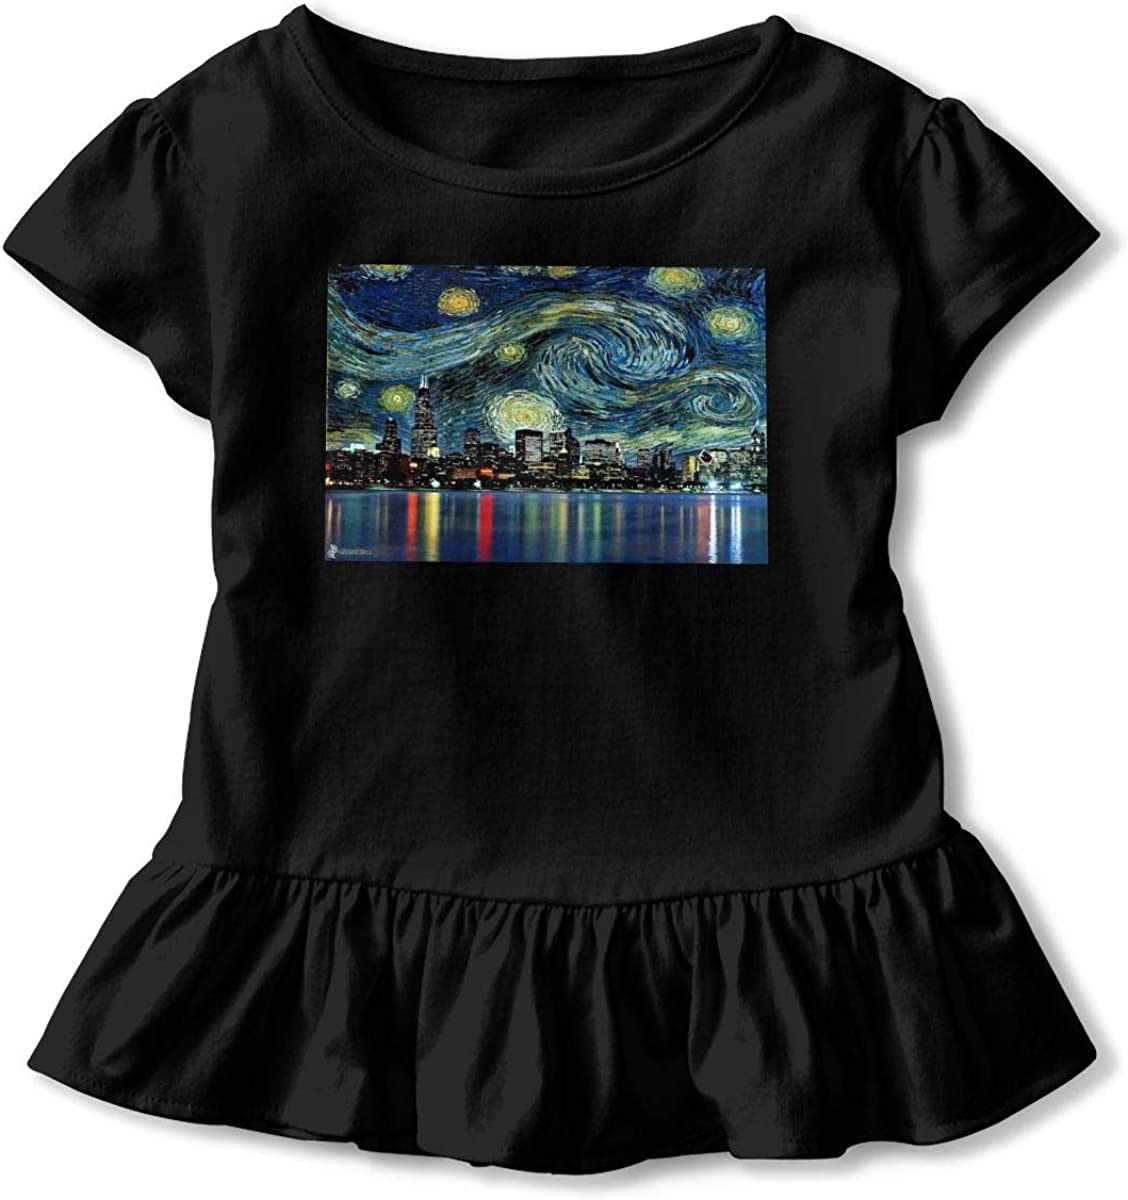 Starry Chicago Night Oil Painting Toddler Girls Short Sleeve T-Shirt Ruffles Cotton Tops for 2-6 Years Old Baby